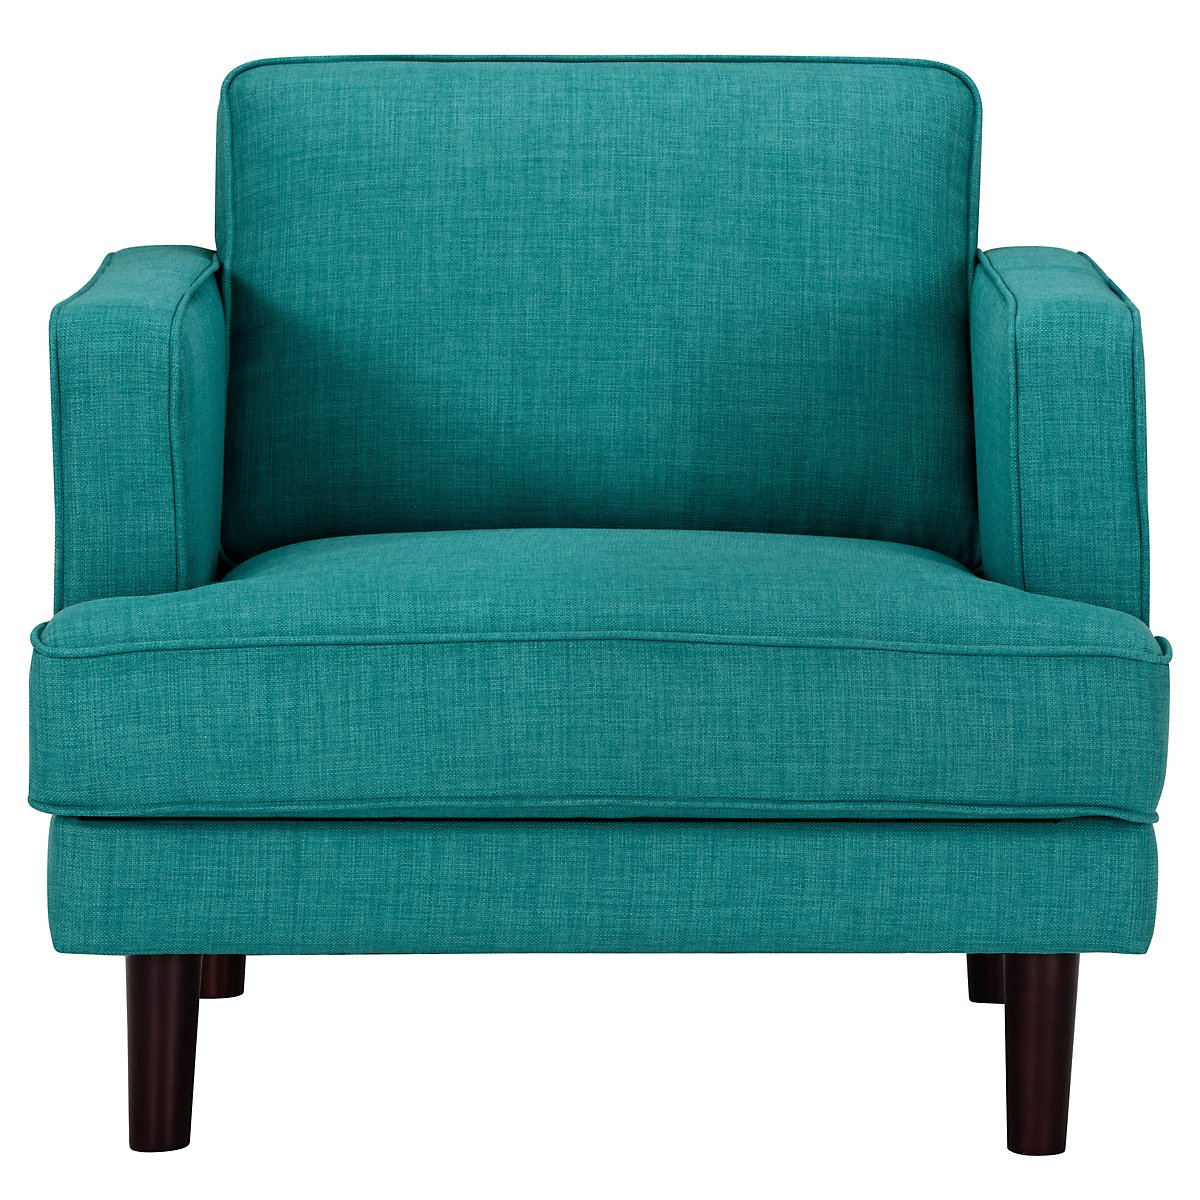 Teal And Green Living Room City Furniture Bliss Teal Living Room